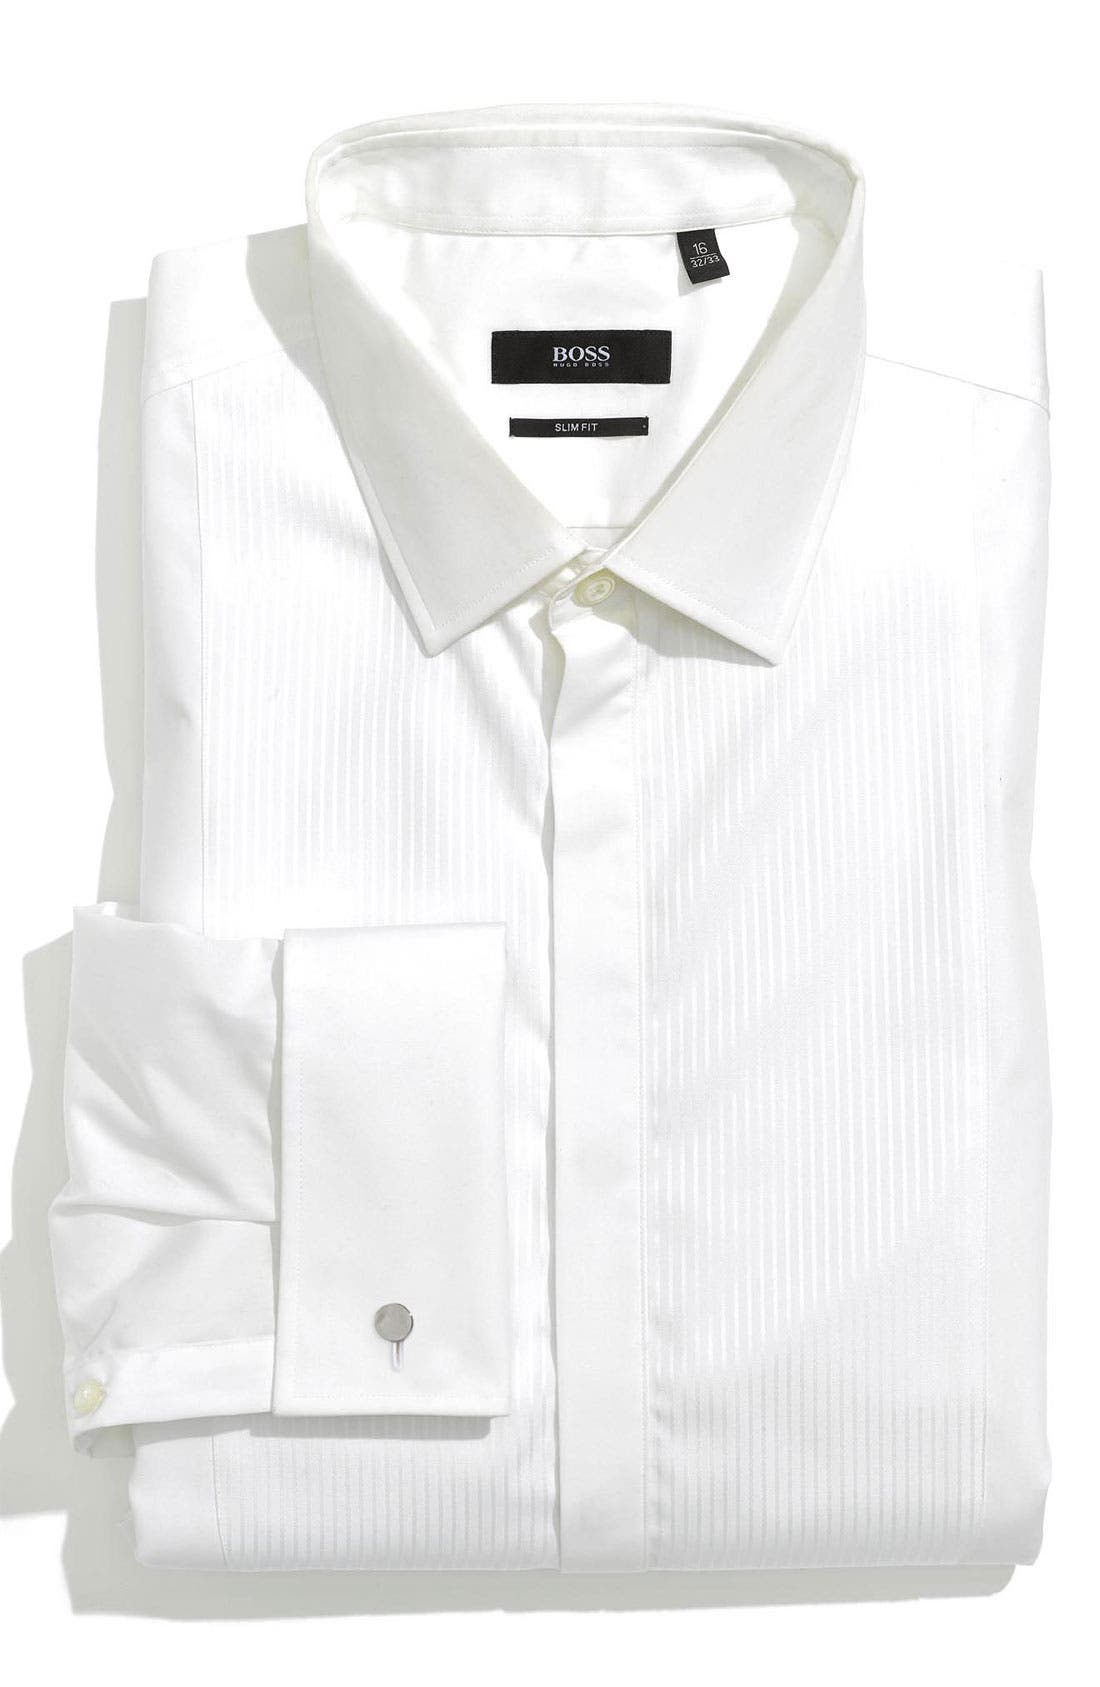 Main Image - BOSS HUGO BOSS 'Jason' Slim Fit Tuxedo Shirt